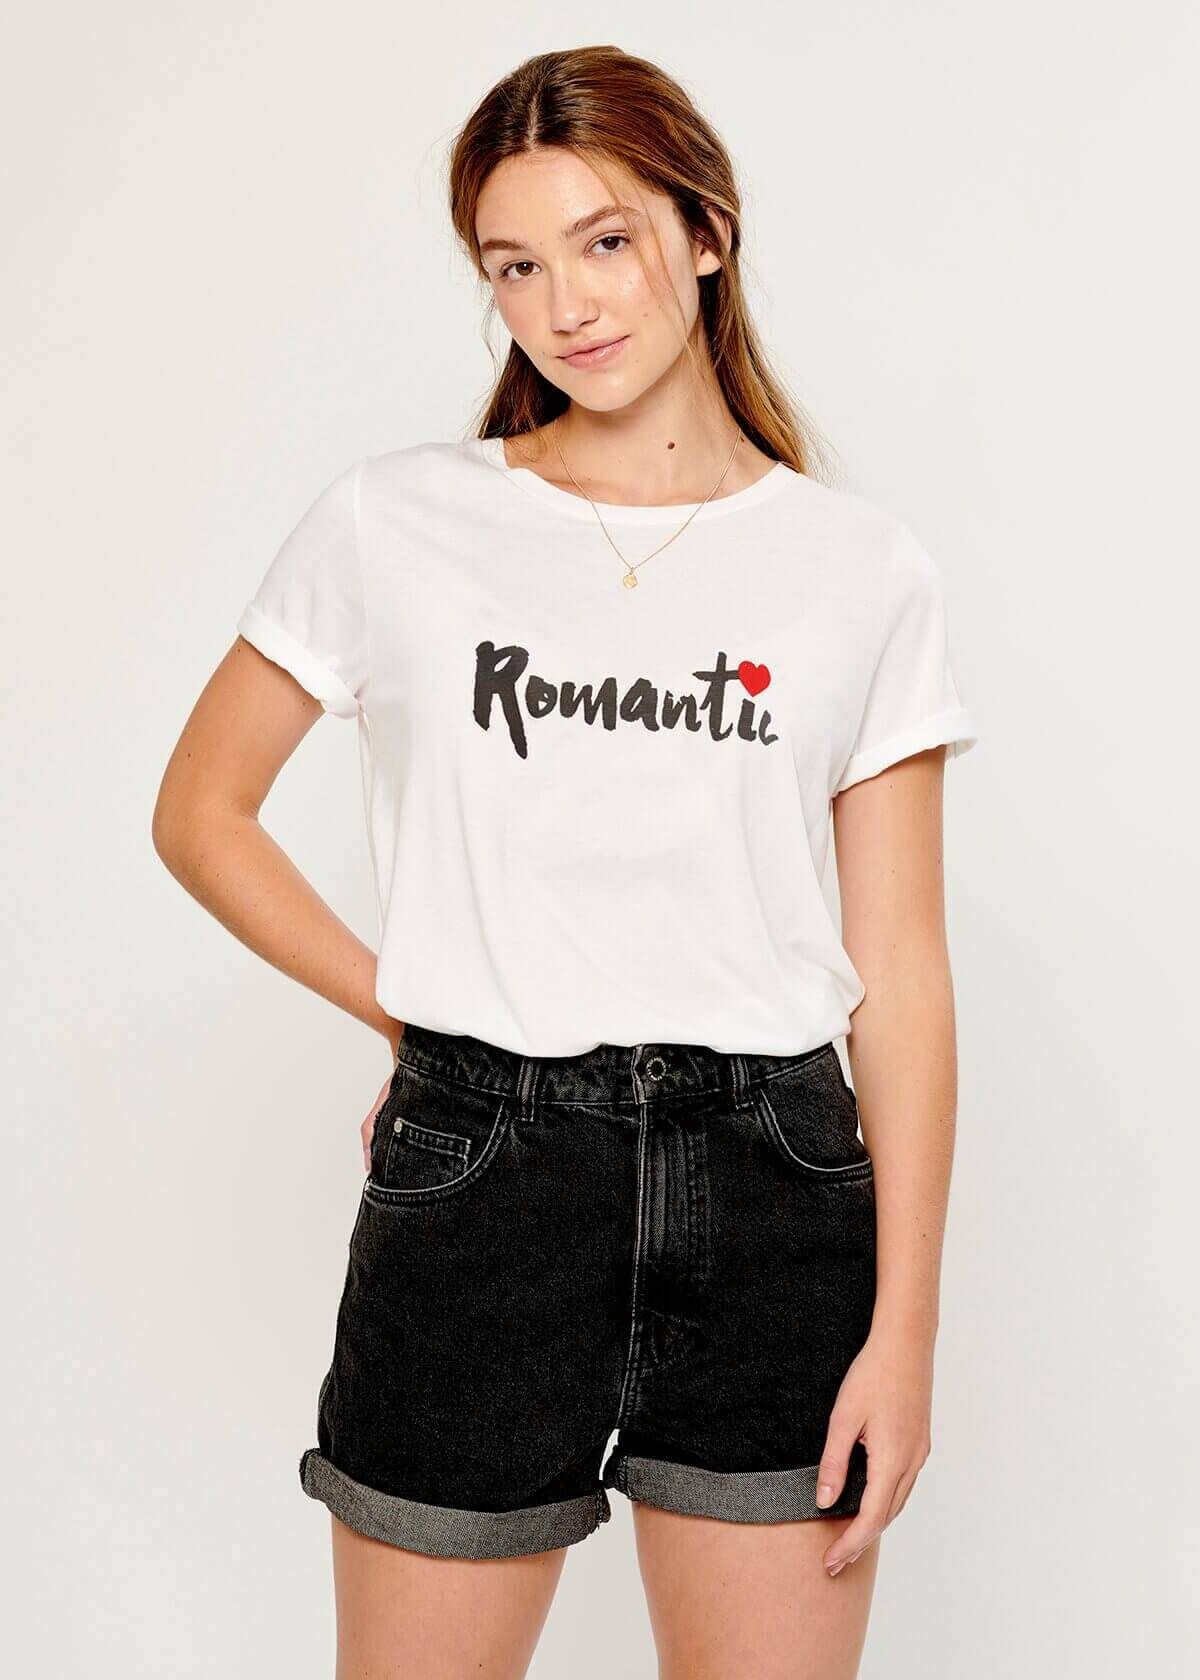 Lola - Loose Tee - Romantic - White